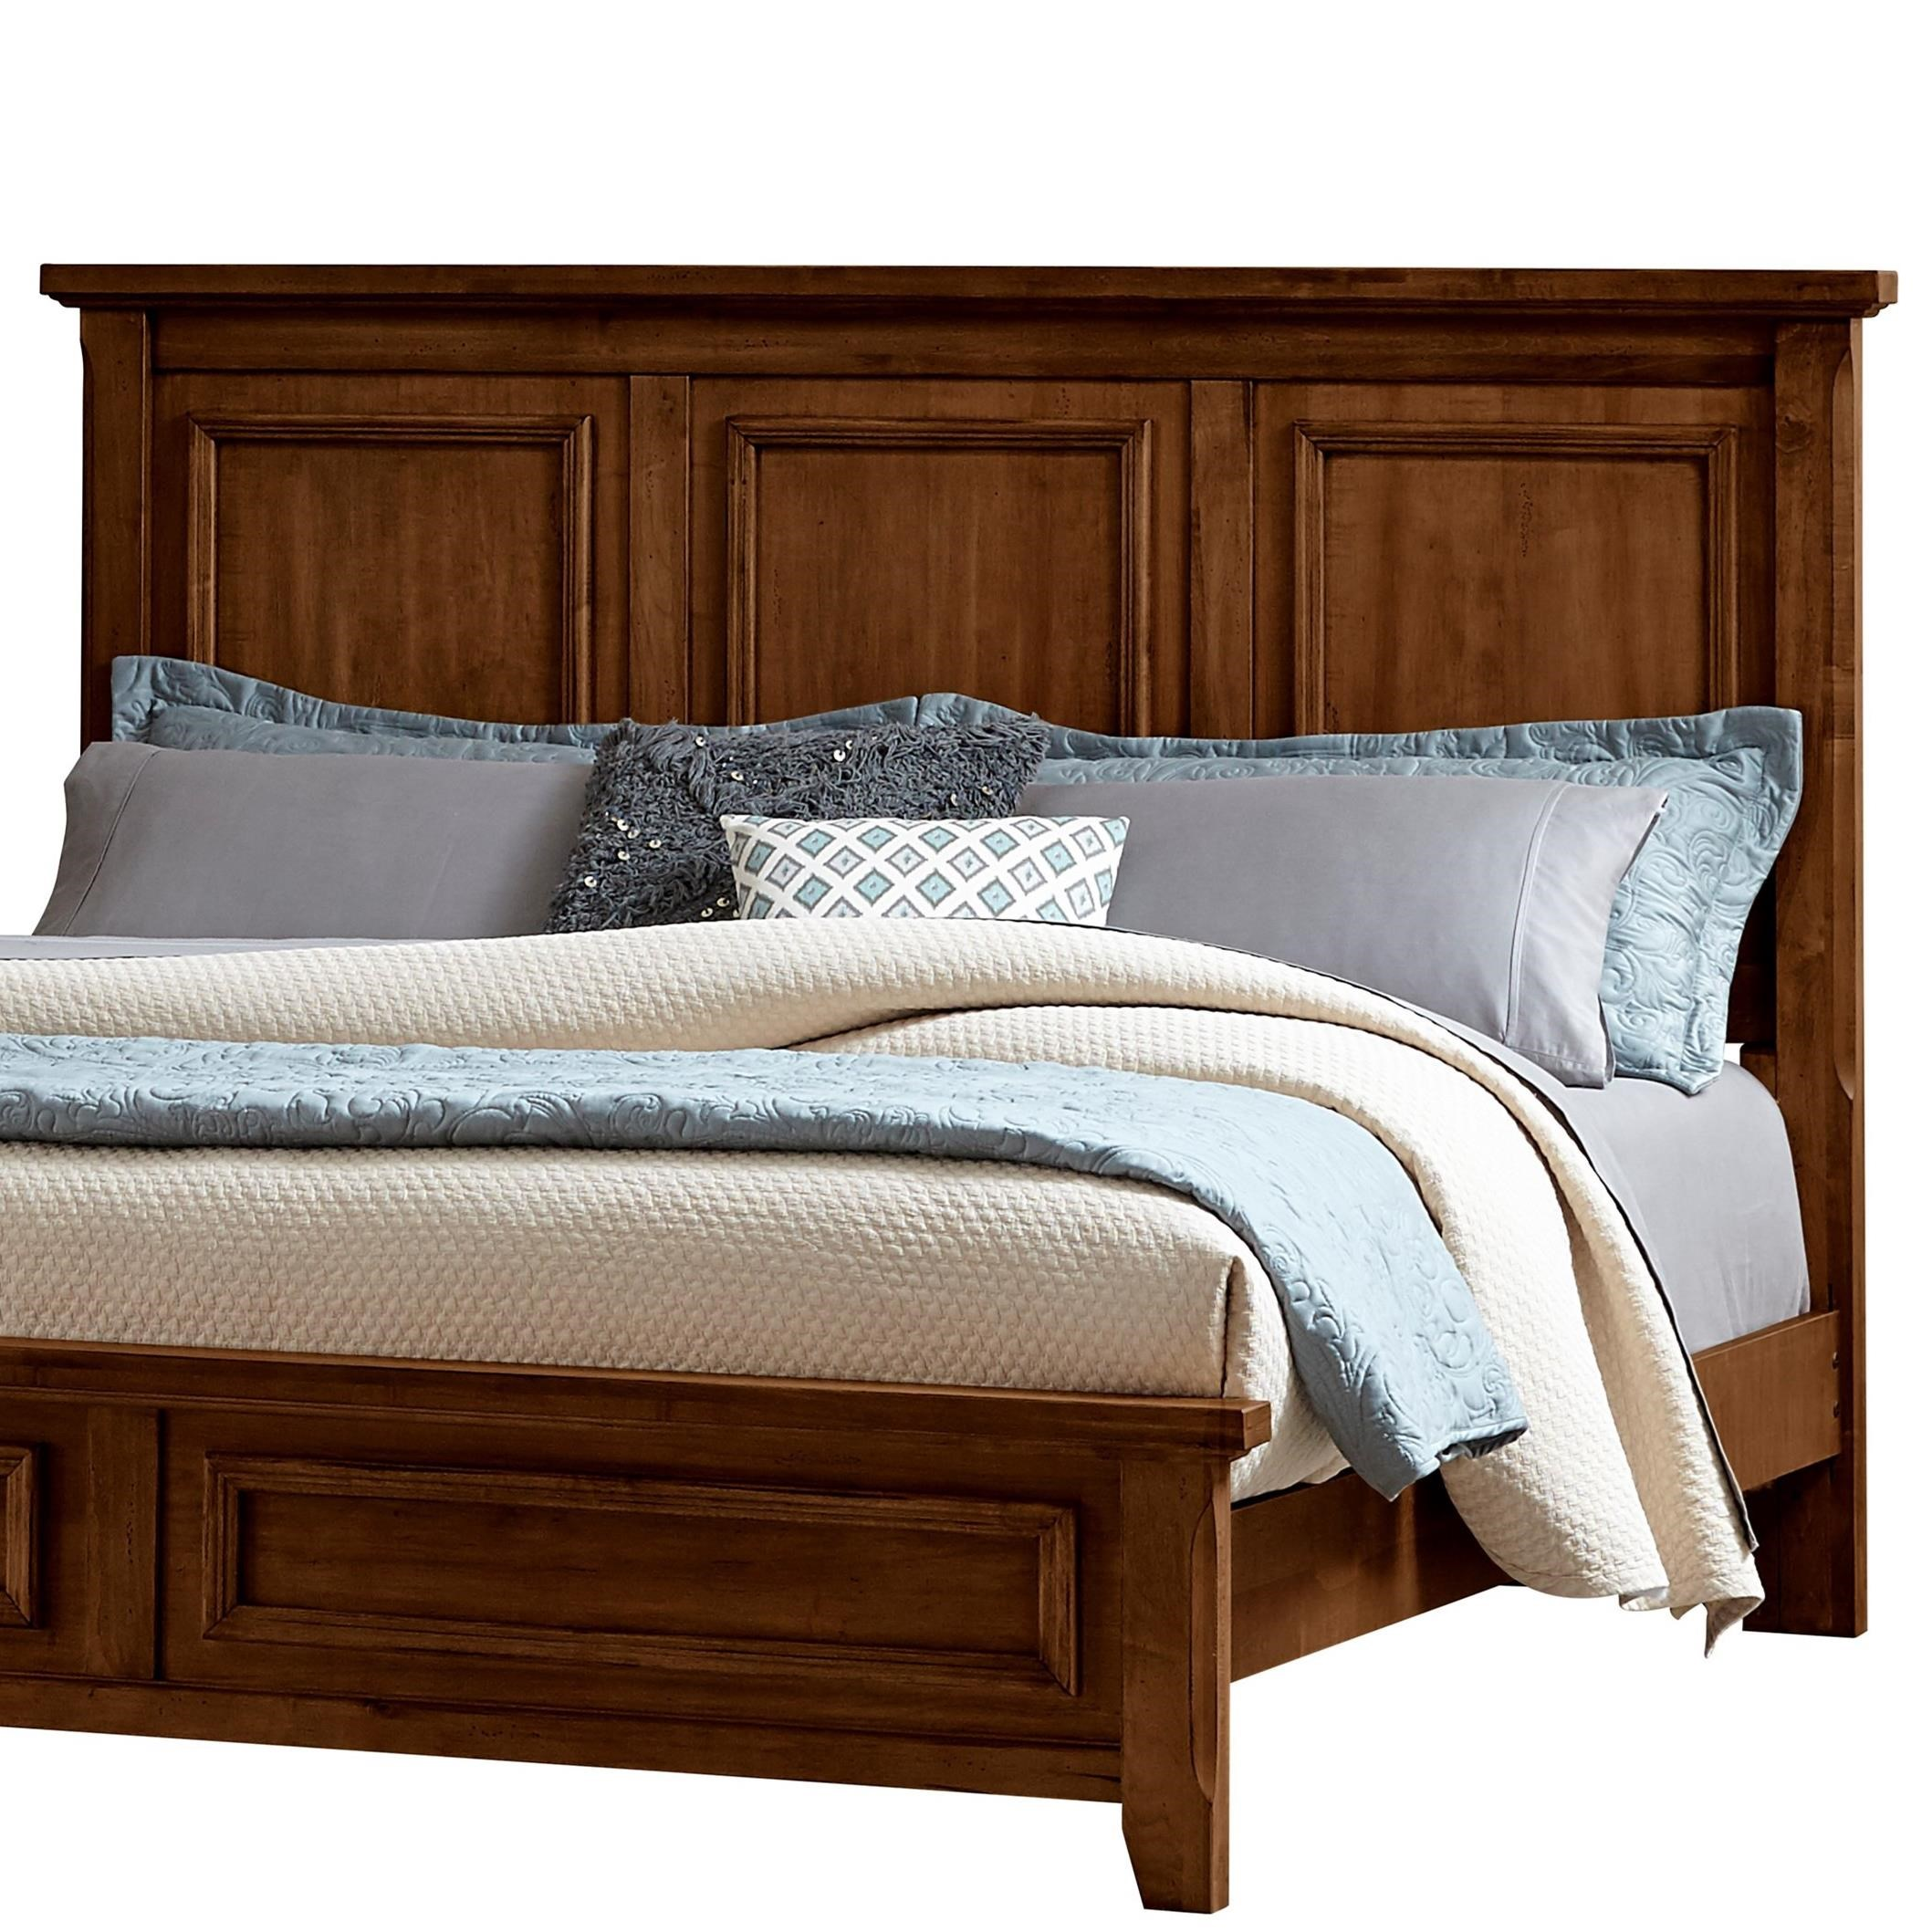 Vaughan Bassett Timber Creek Queen Mansion Headboard - Item Number: 670-557